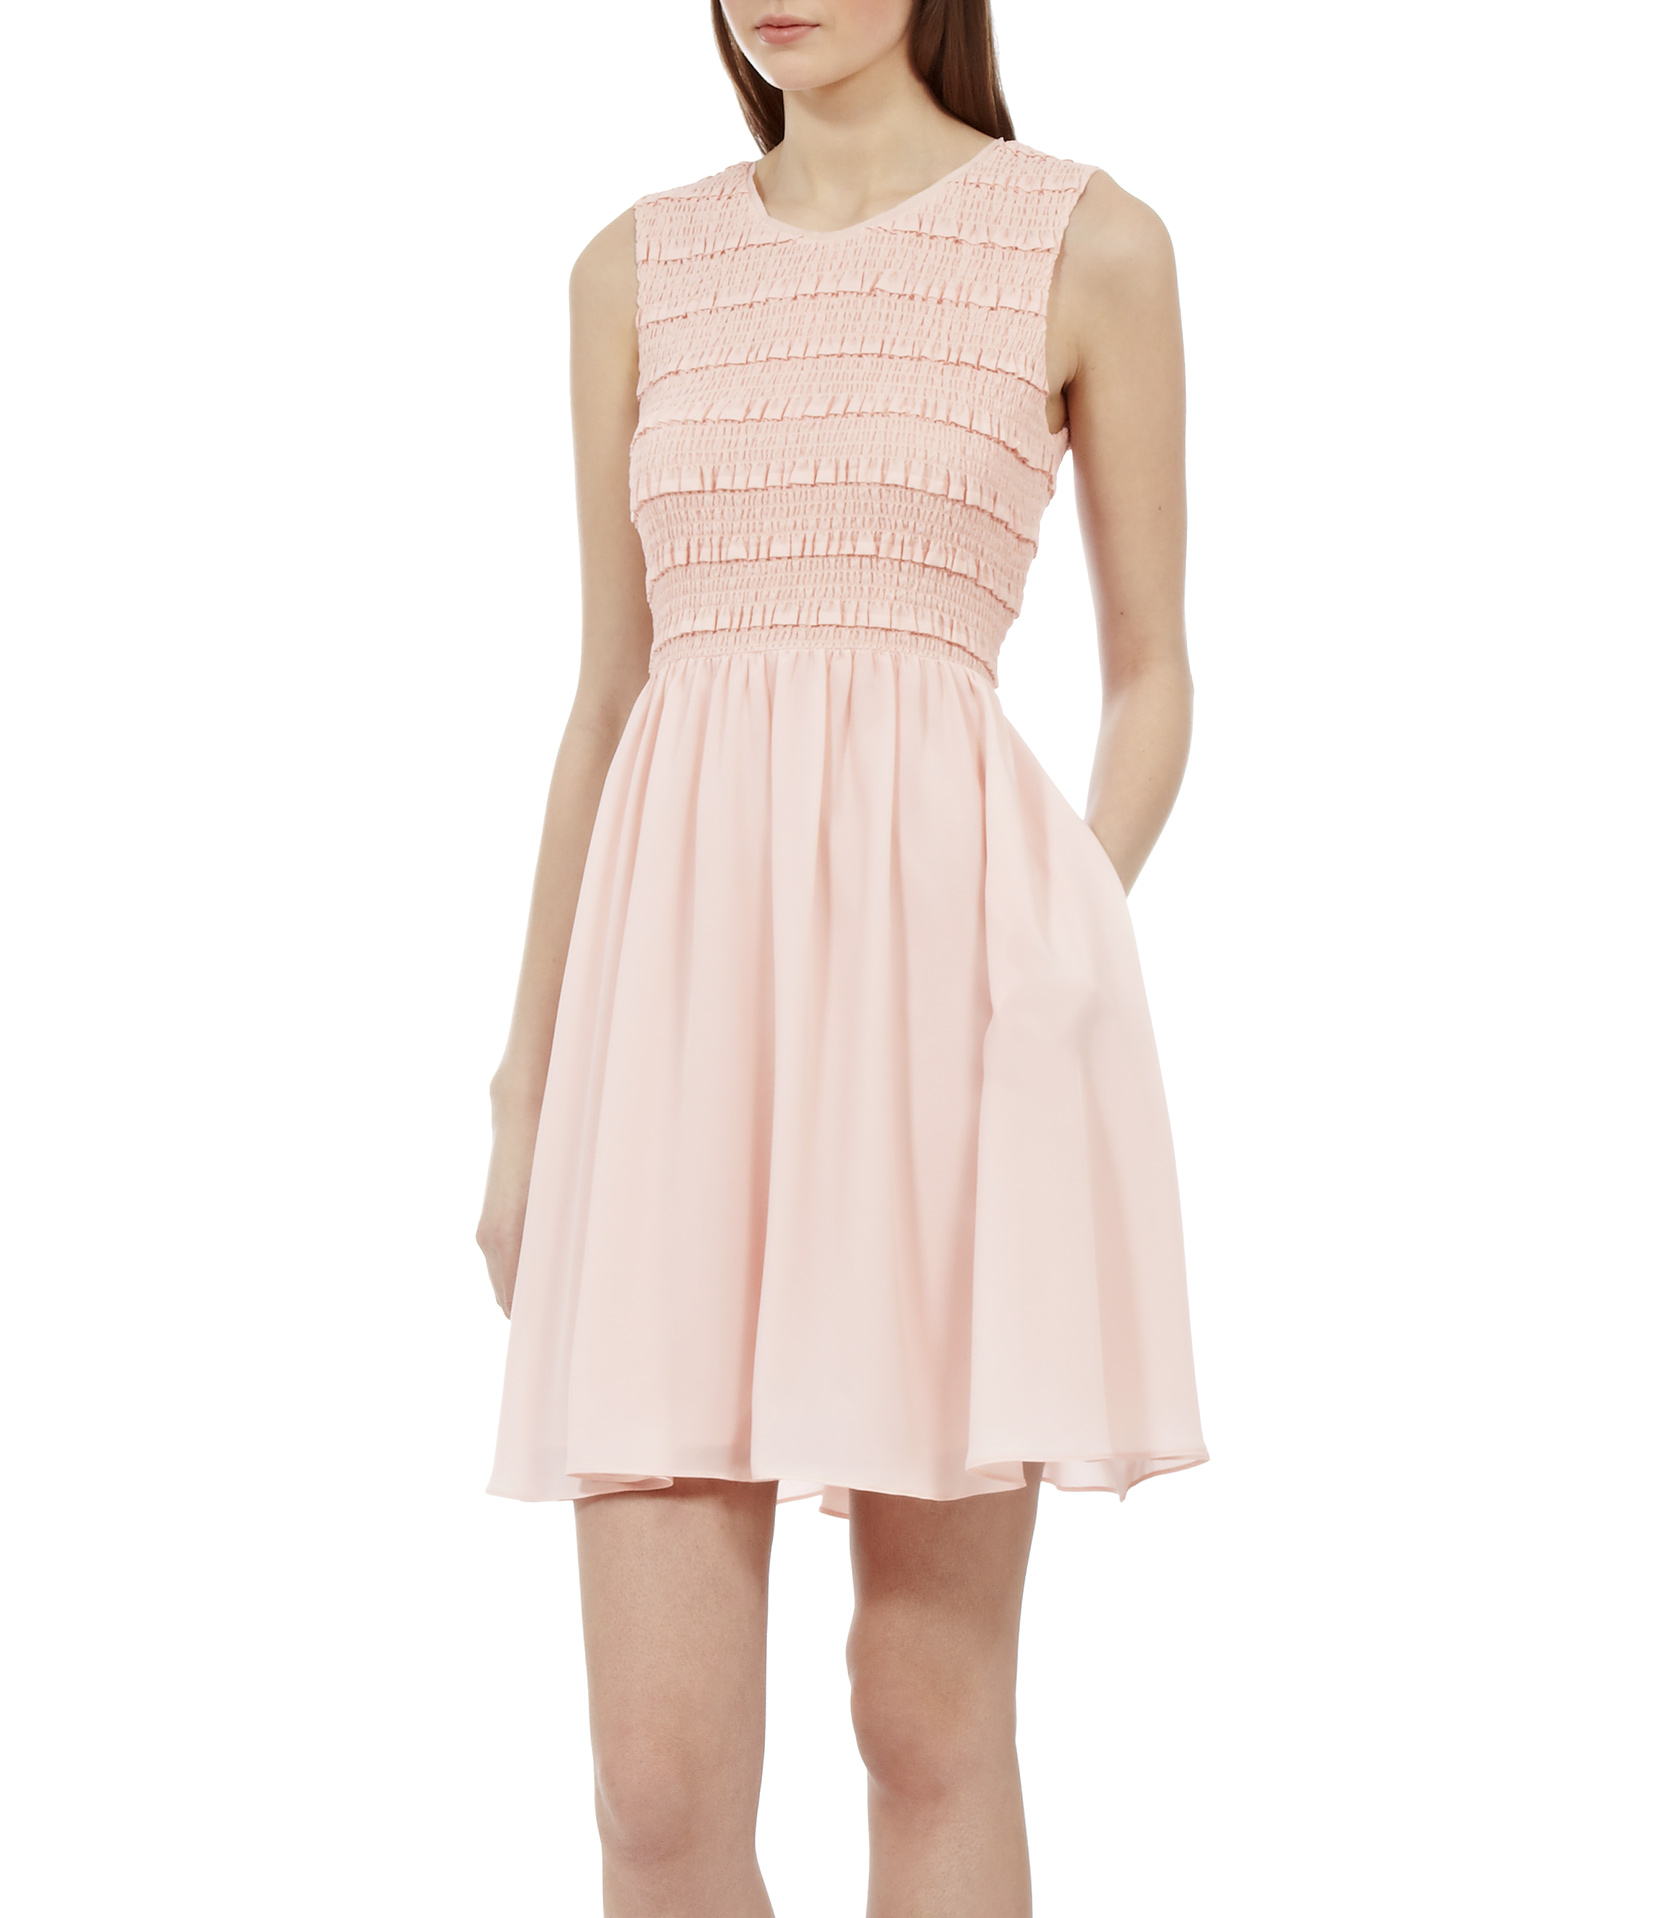 Reiss Smocking Detail Fit And Flare Dress In Soft Pink